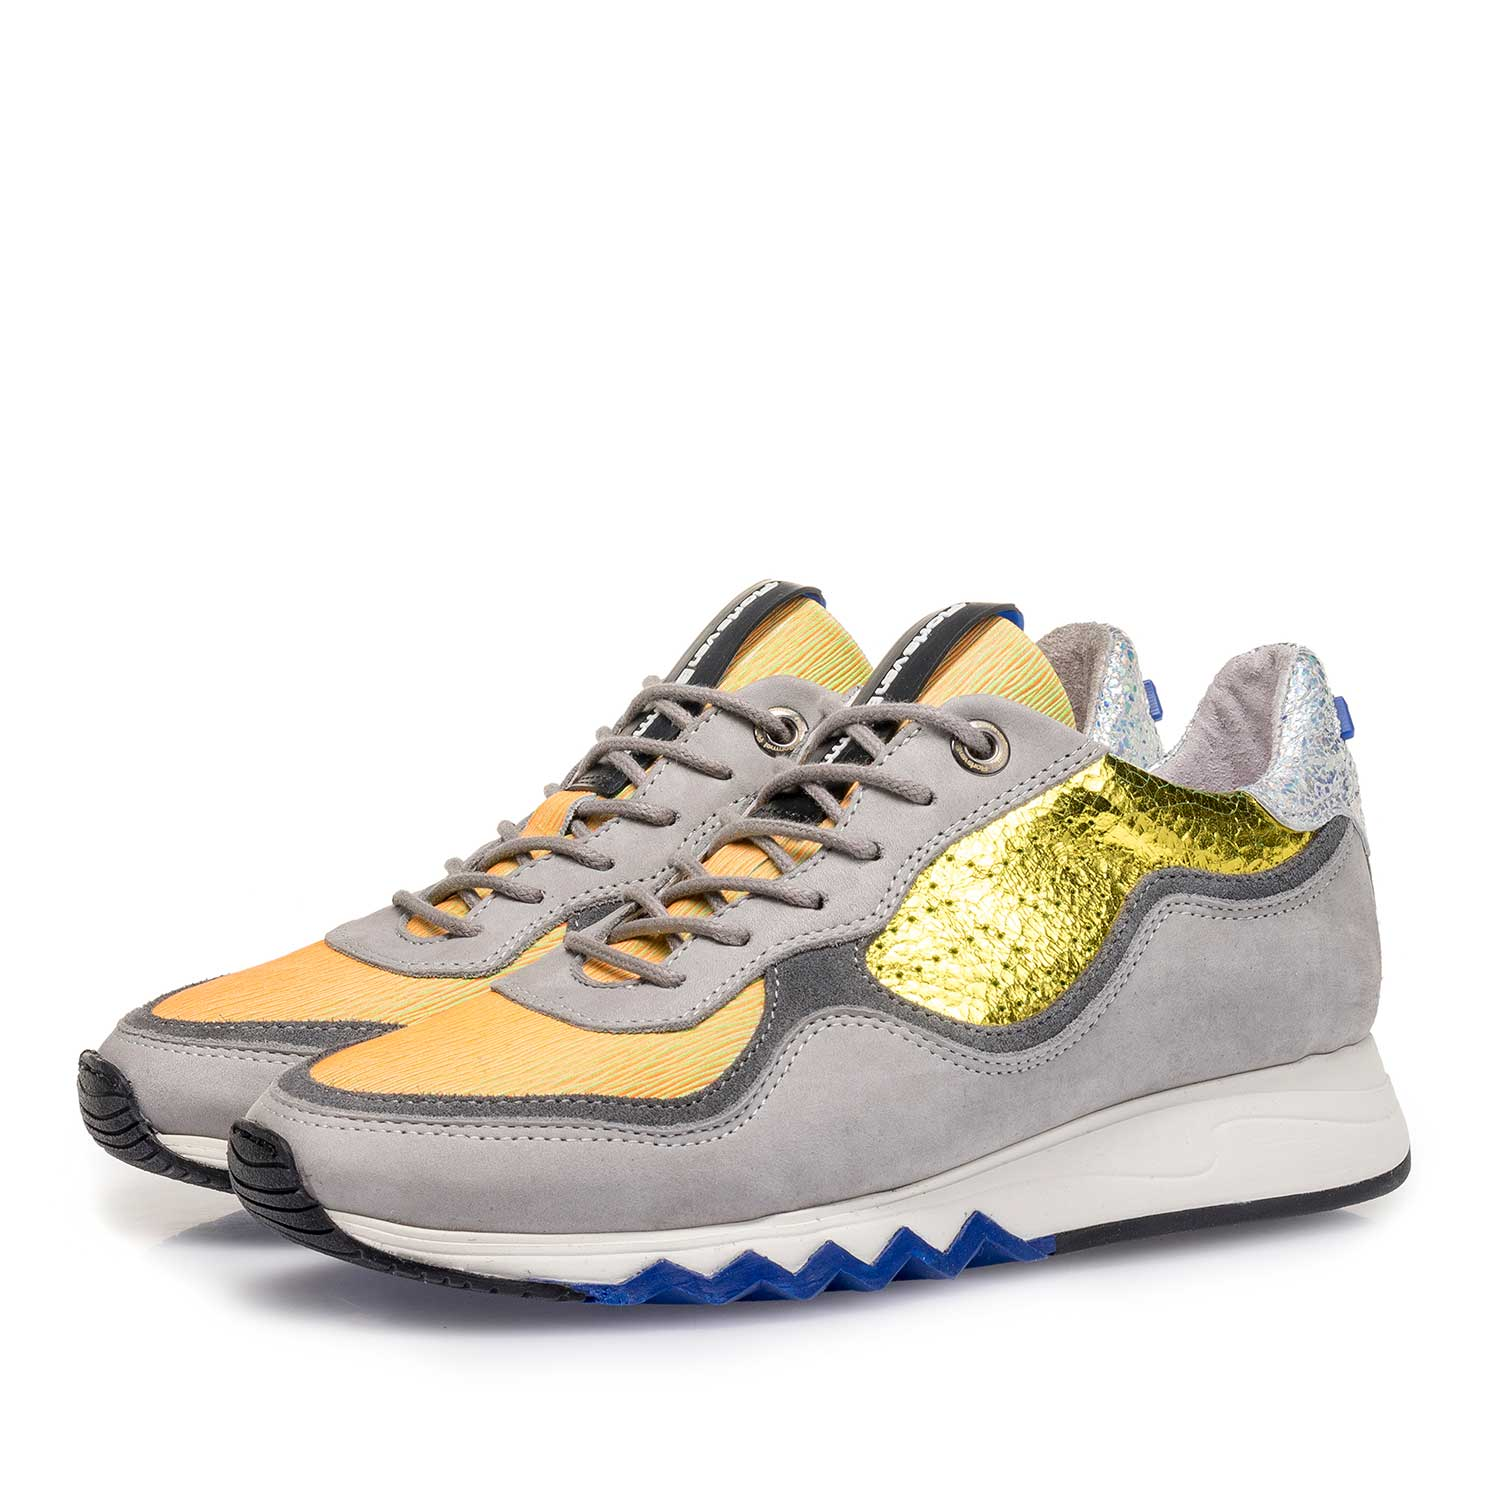 85265/07 - Grey nubuck leather sneaker with yellow details